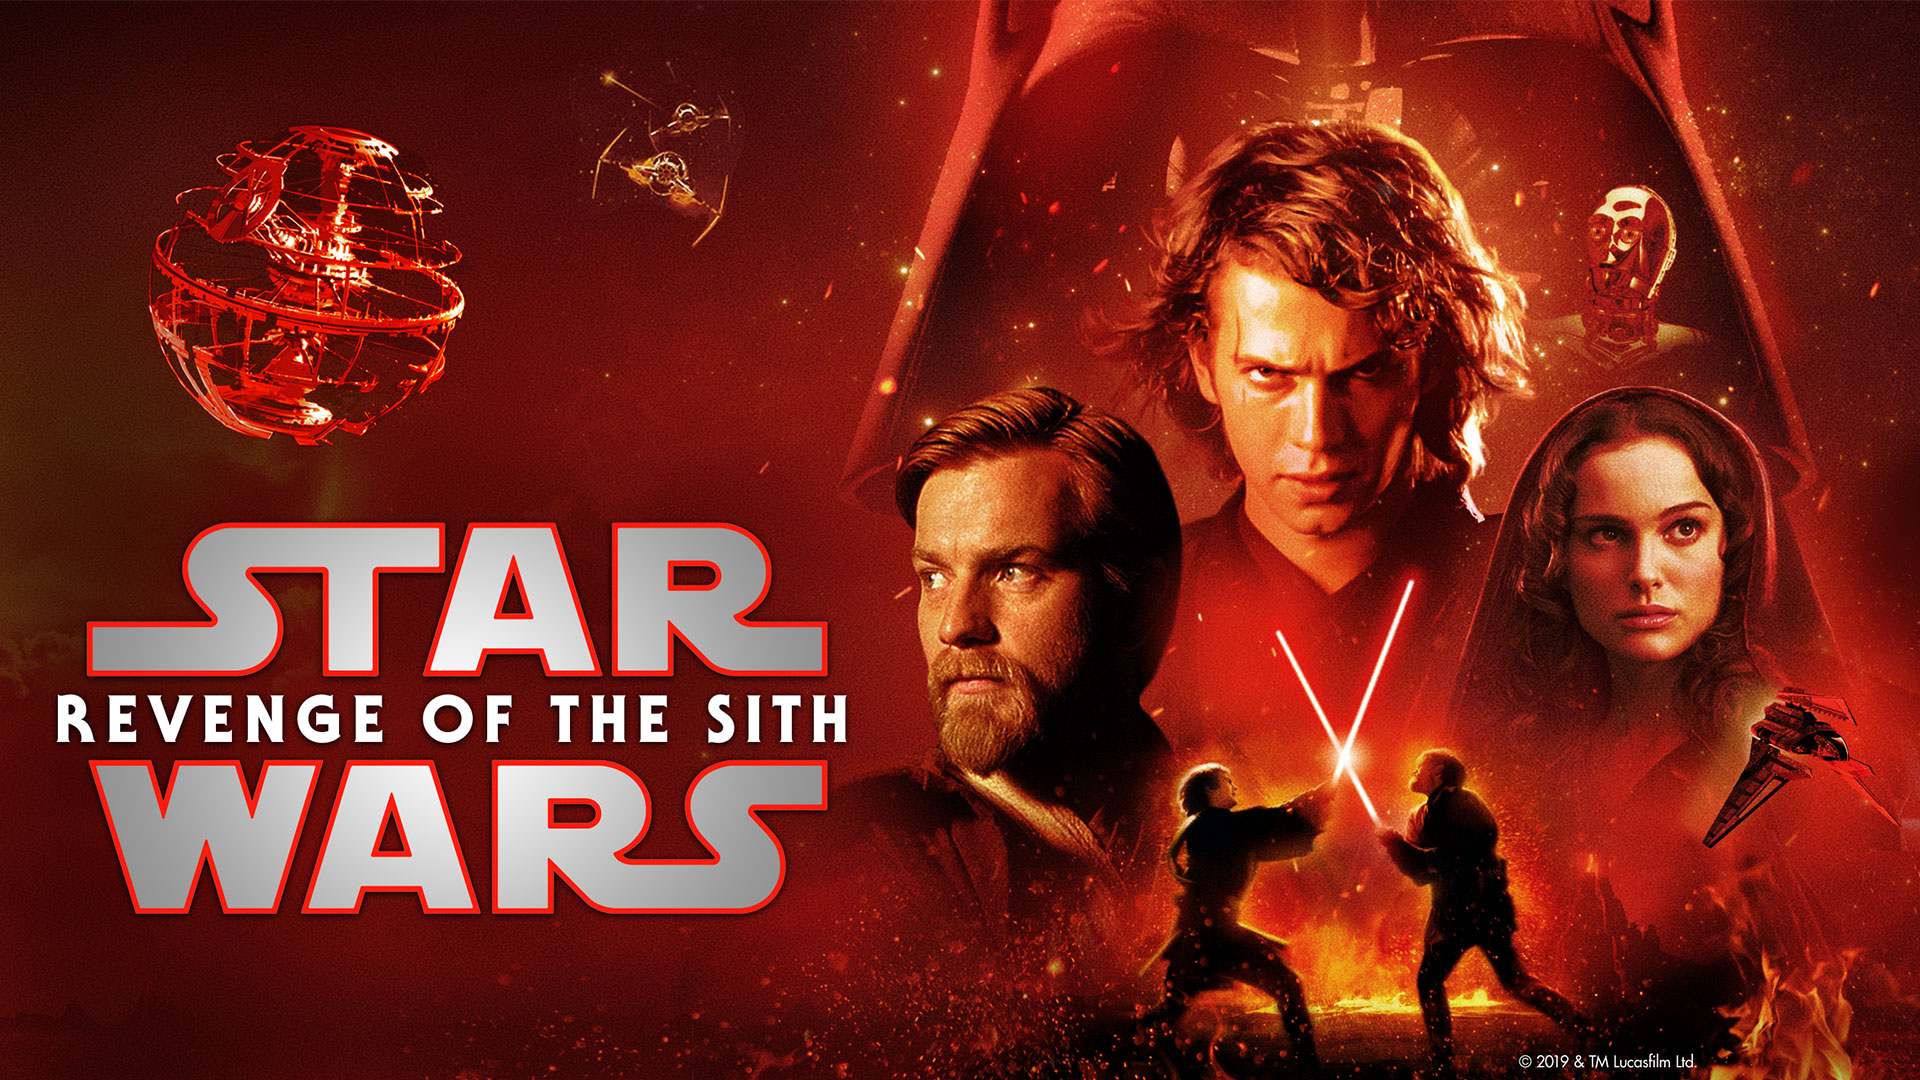 Star Wars: Revenge of the Sith (Theatrical Version)